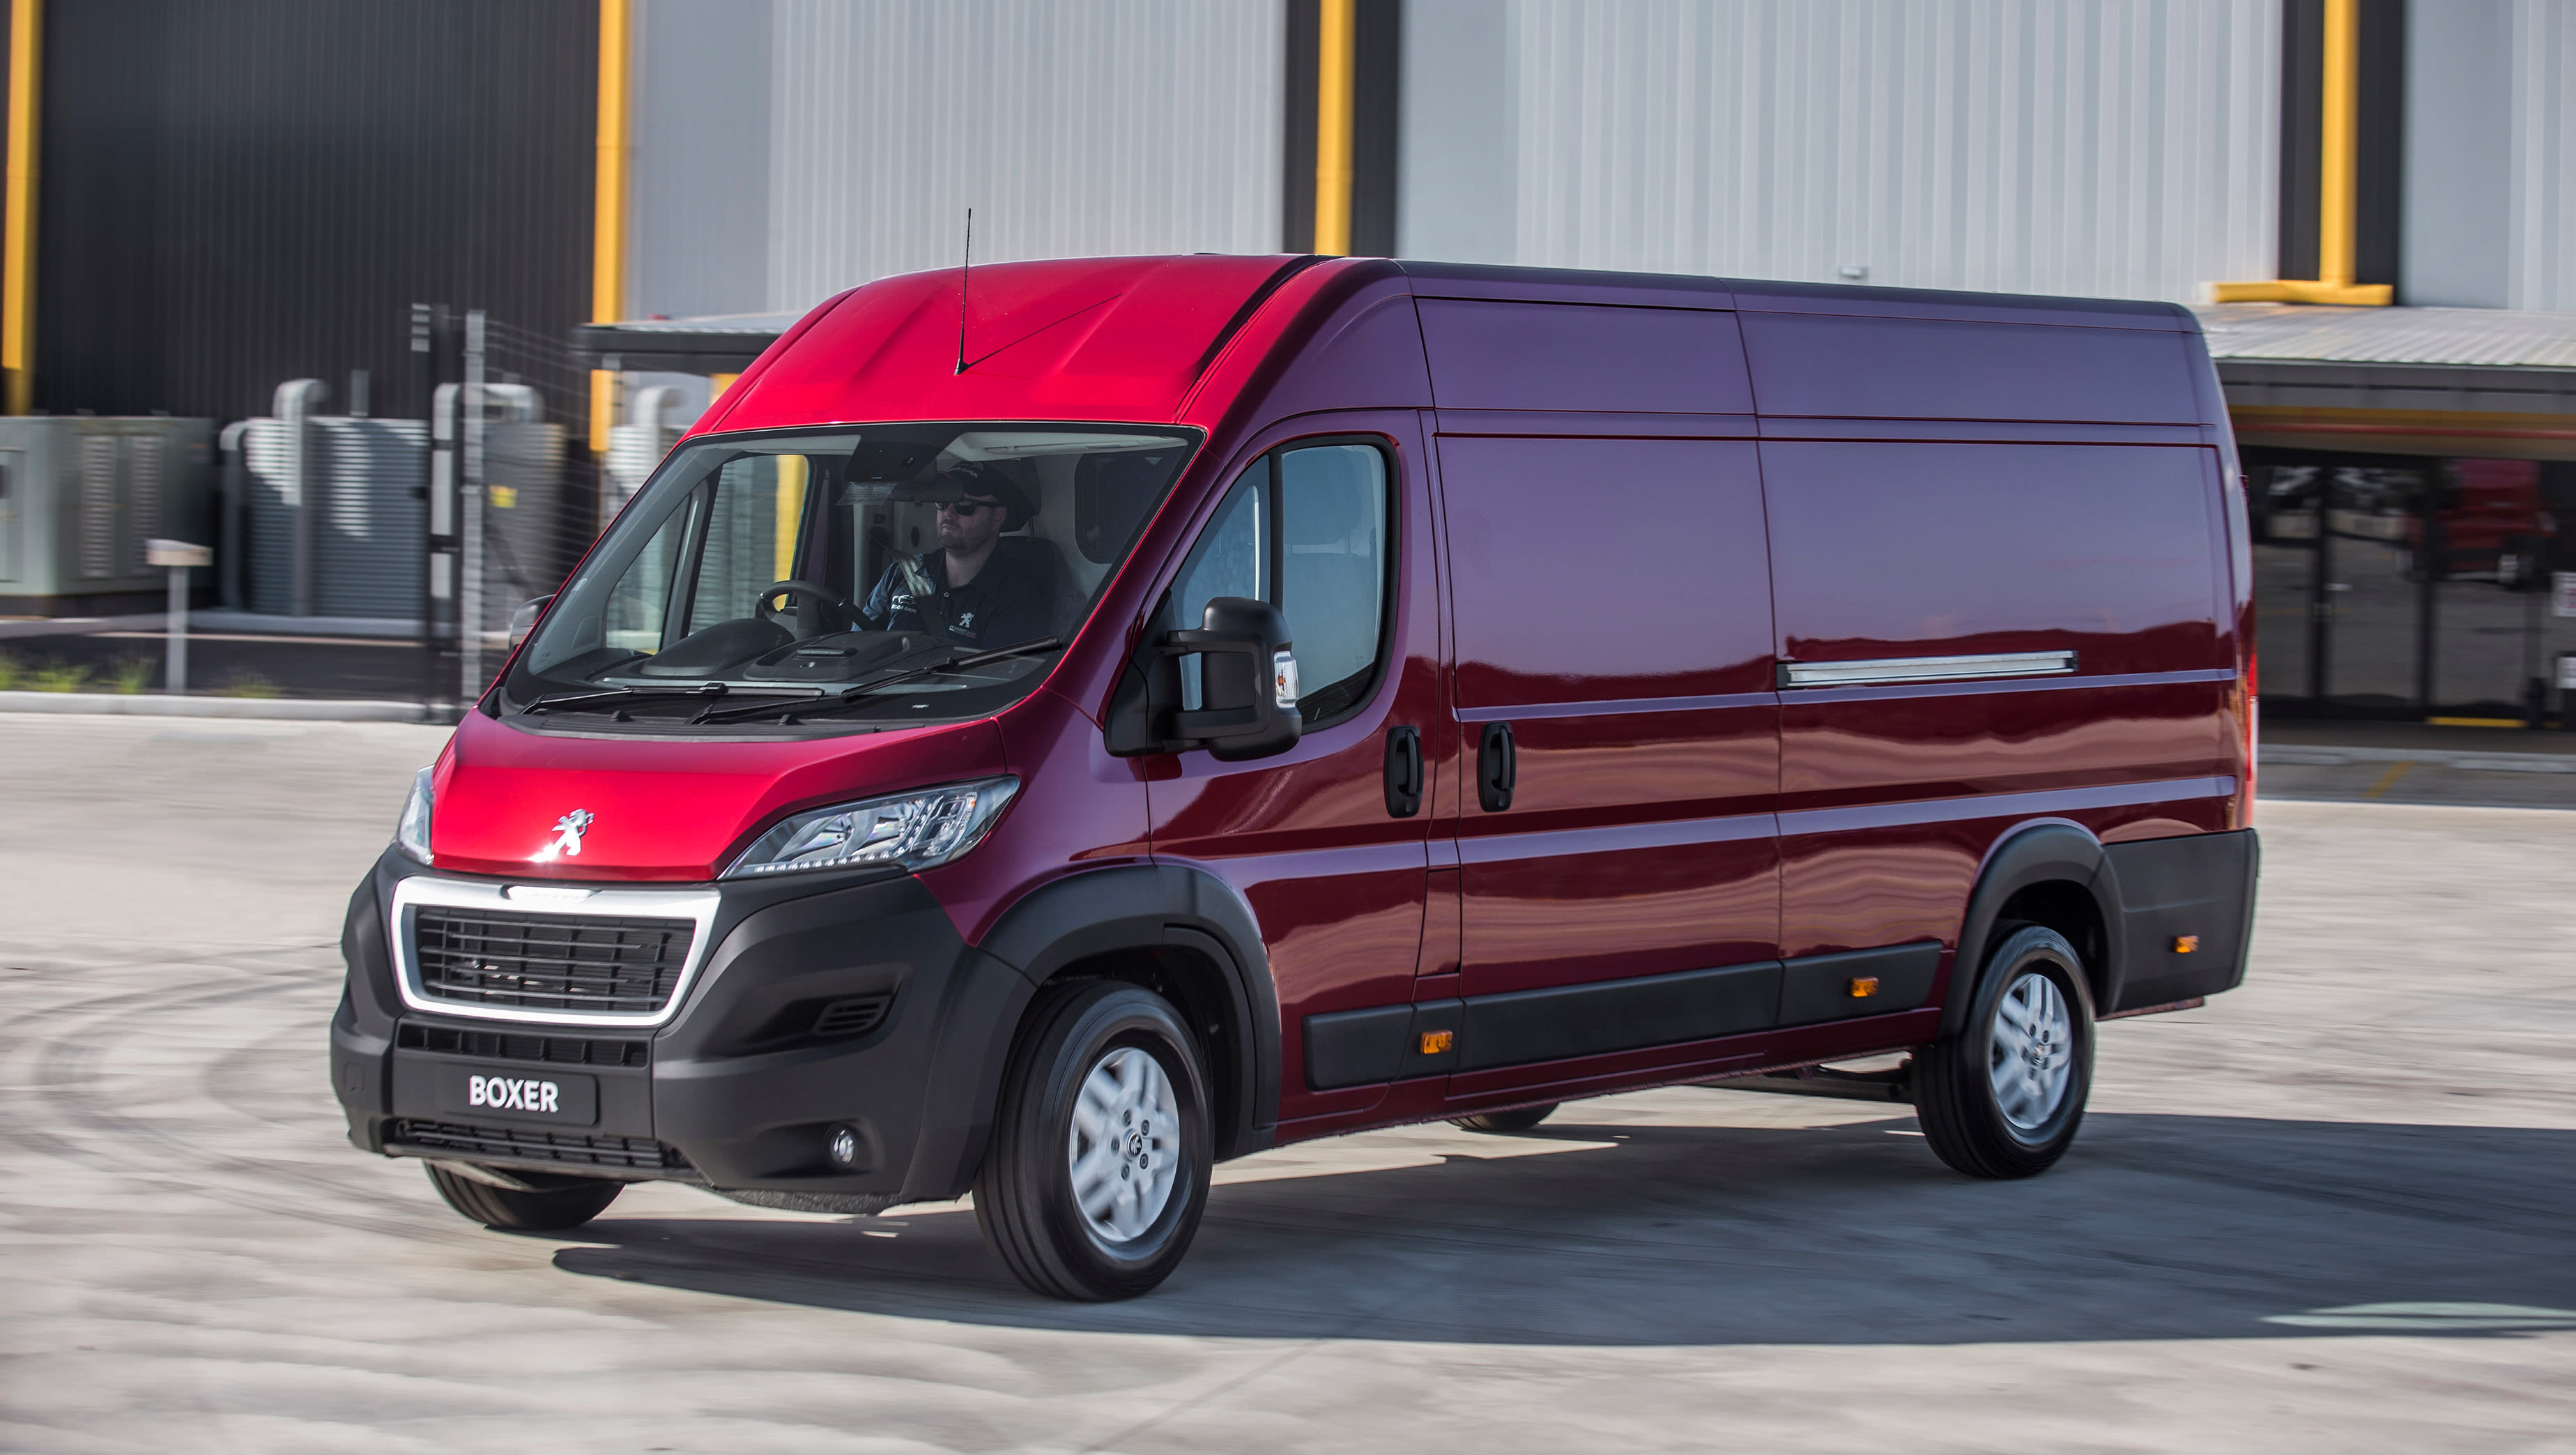 Peugeot Boxer 2020 Pricing And Spec Confirmed Large Van